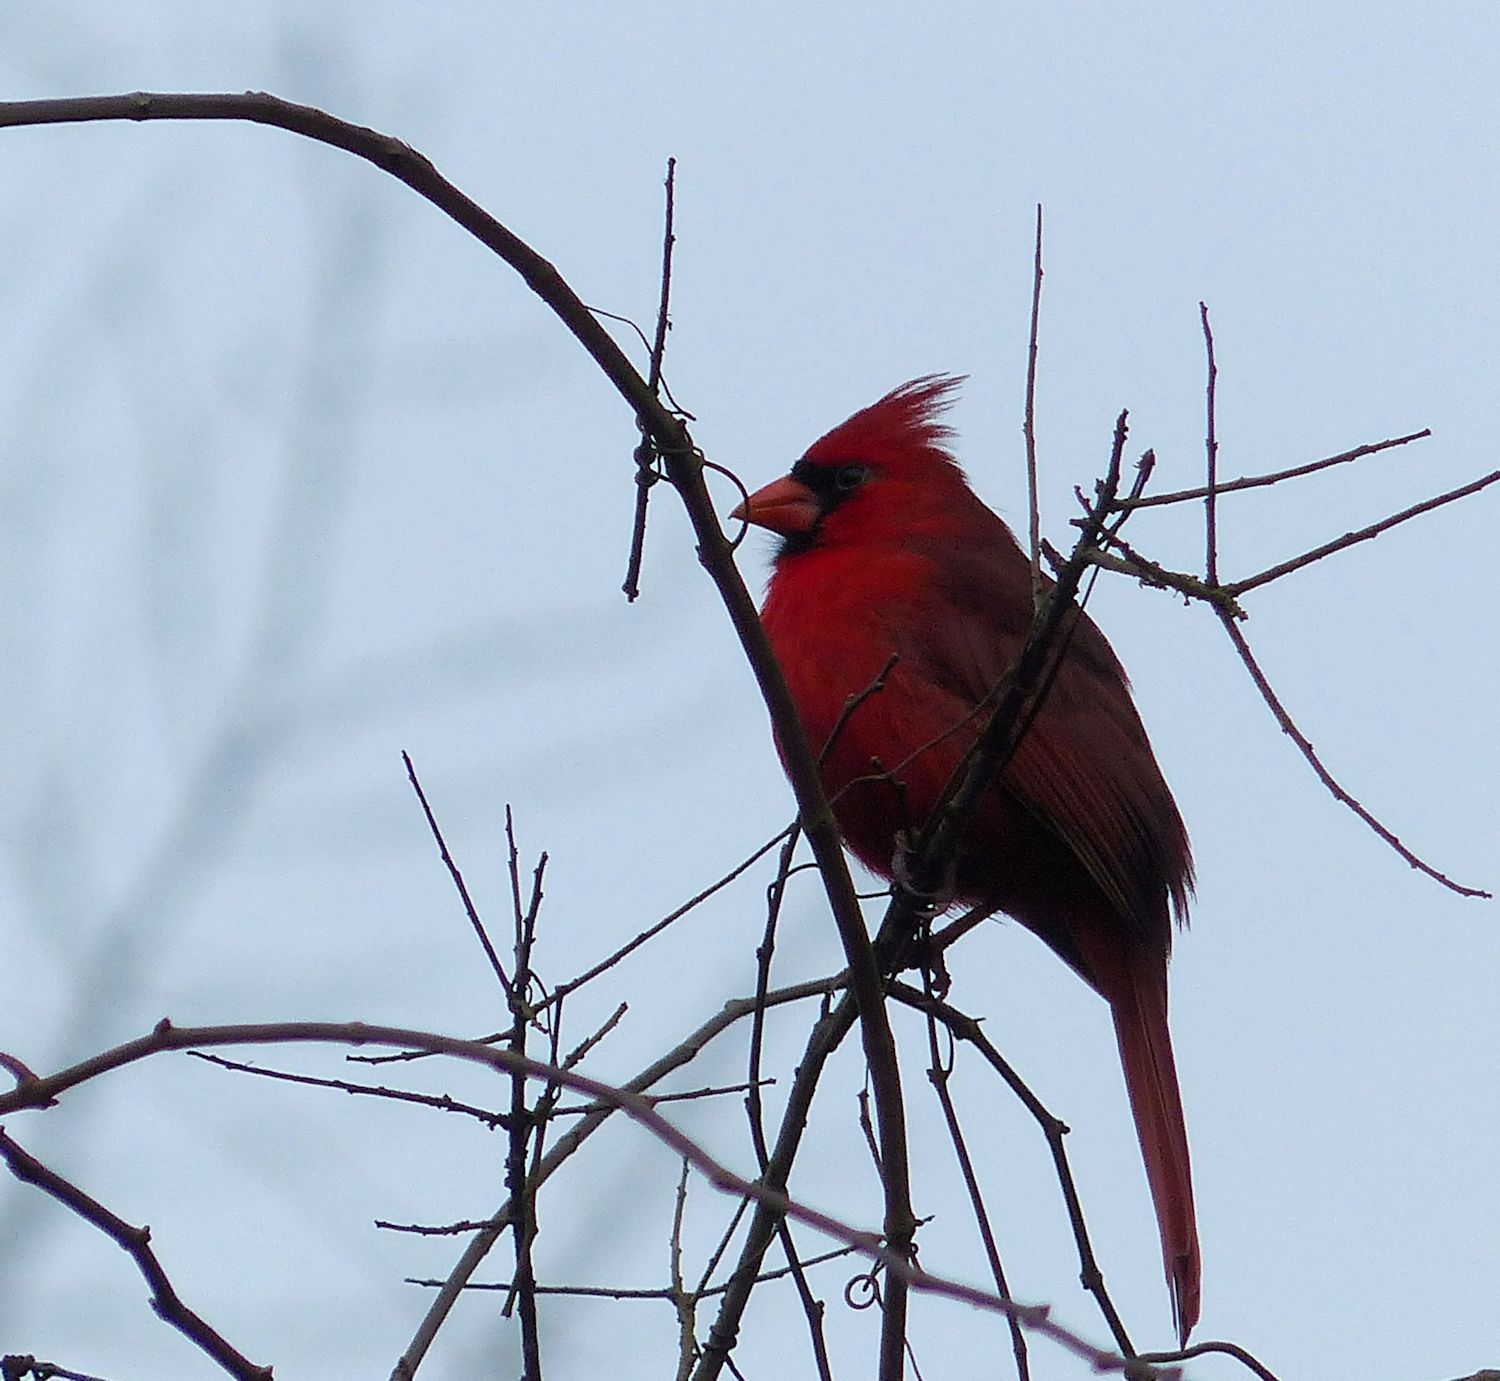 Northern Cardinal. Well, he was singing just a minute ago.